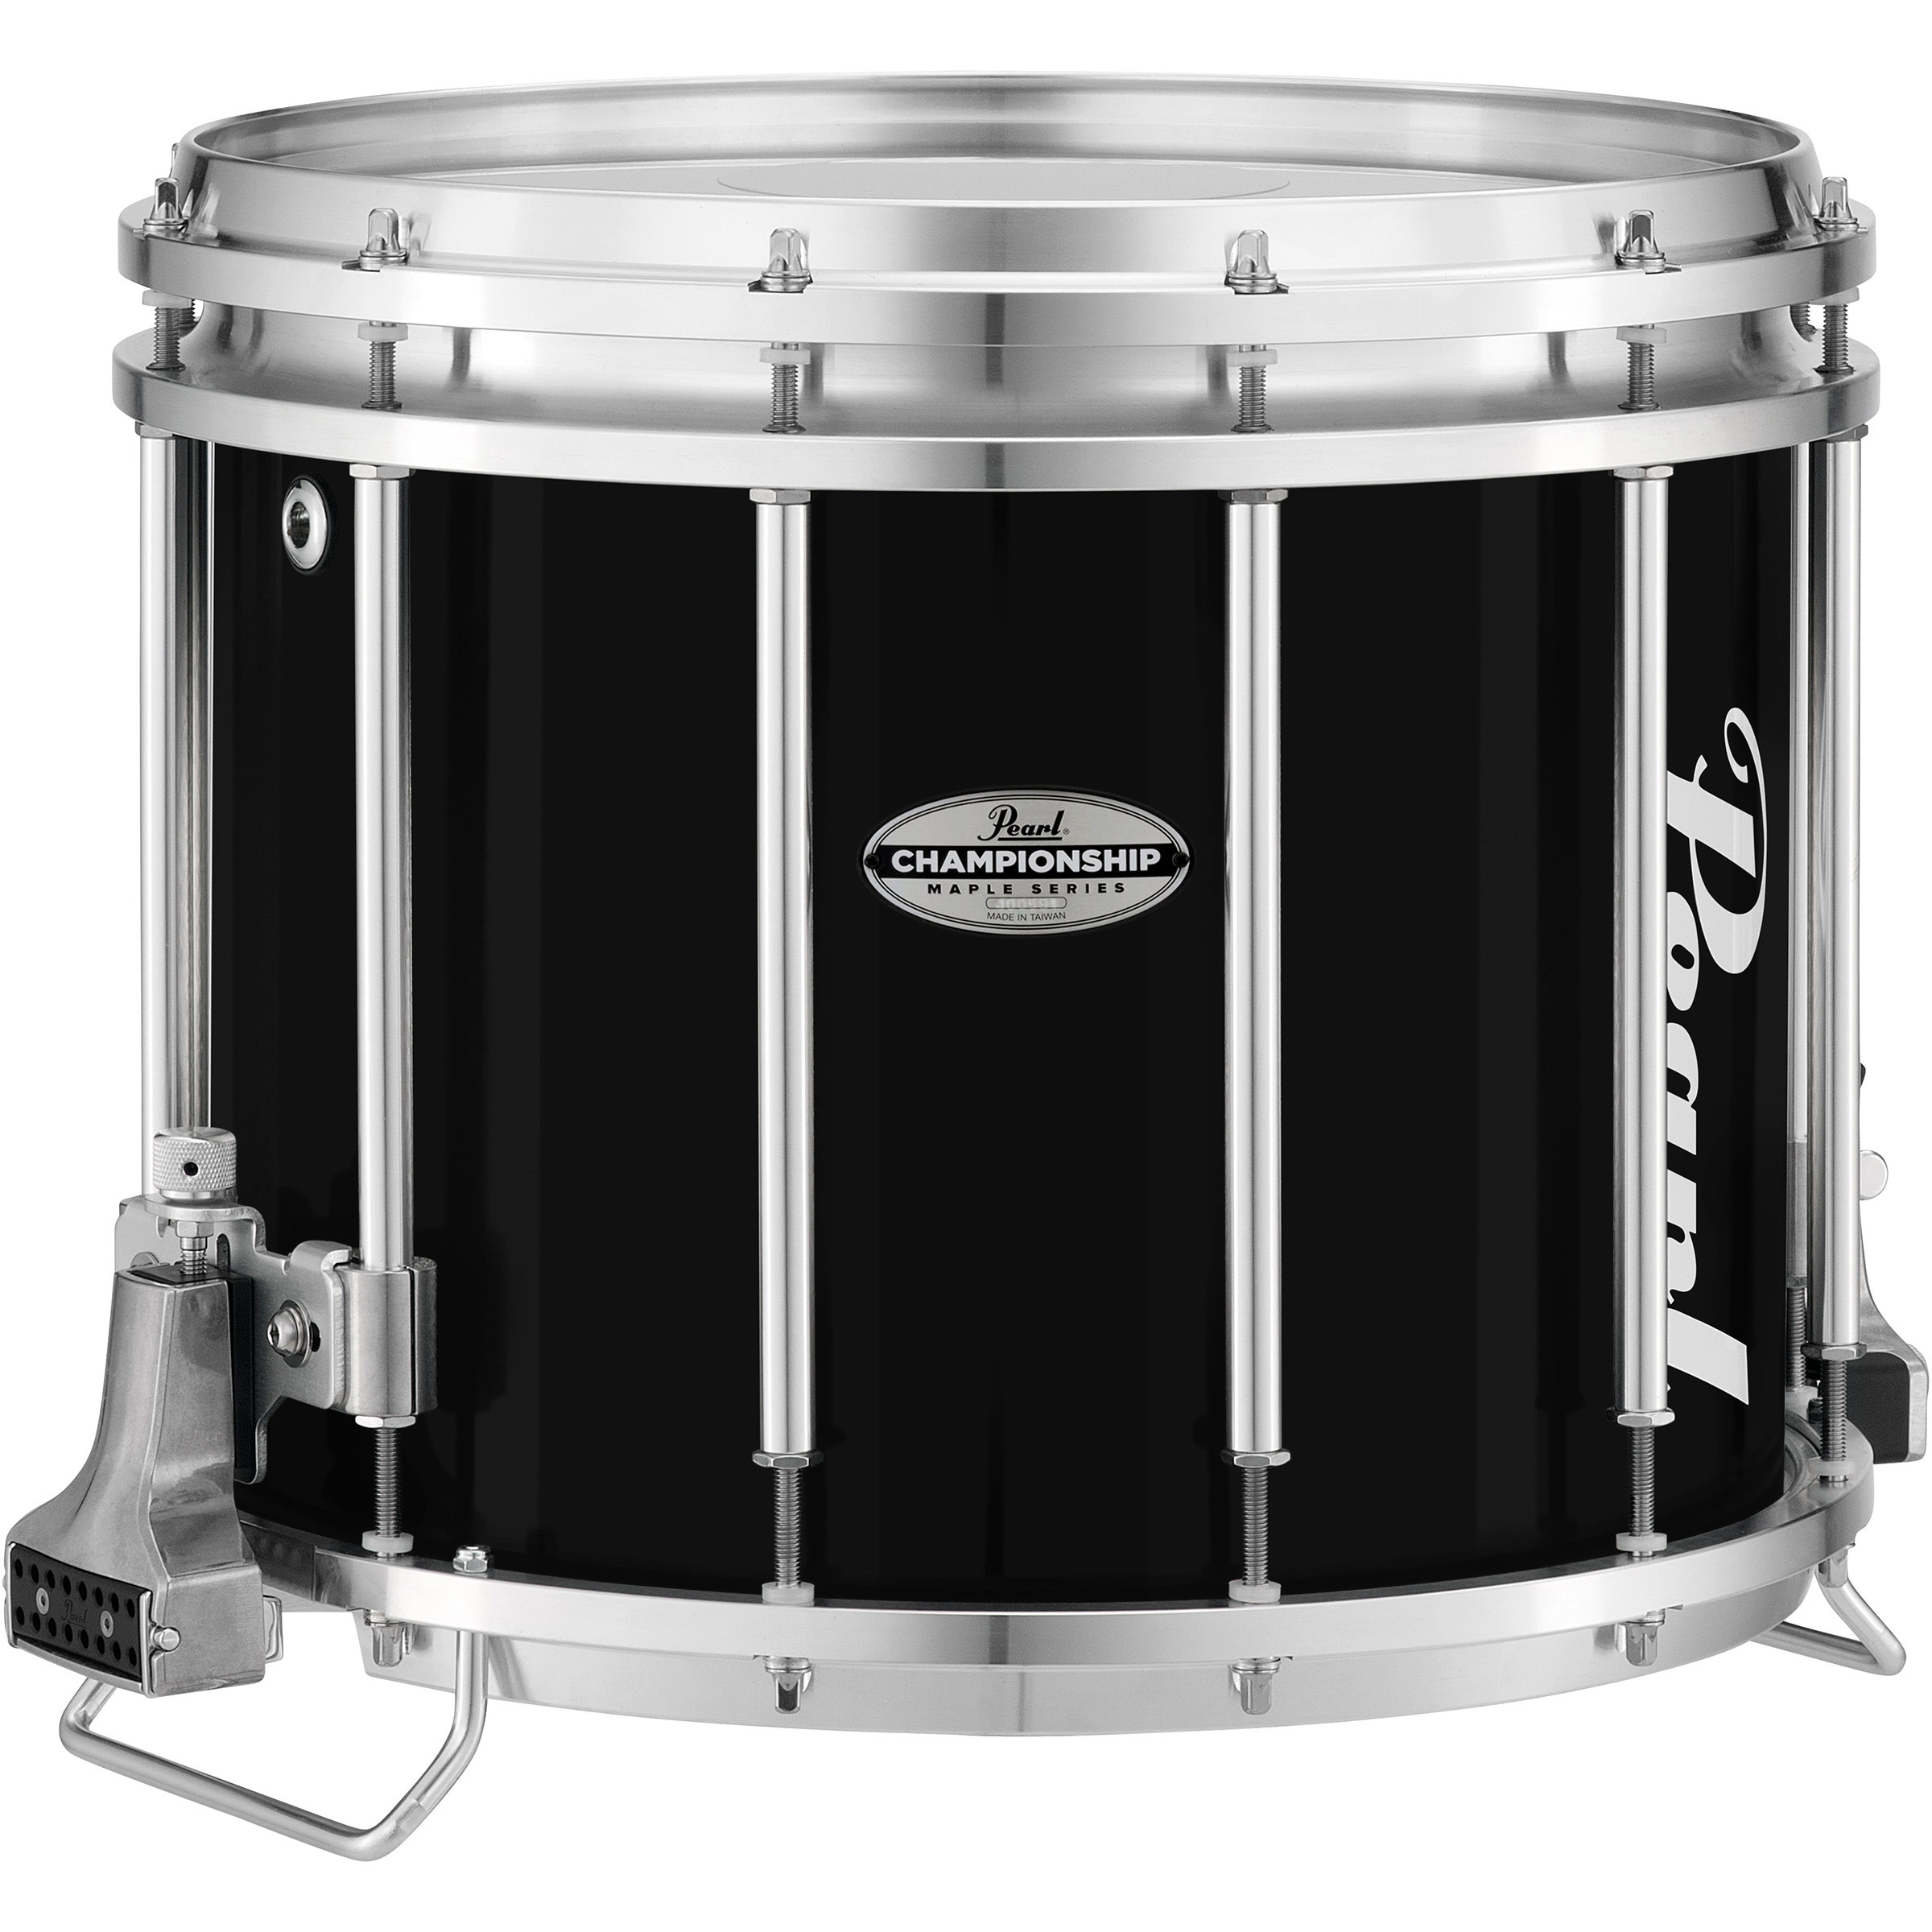 Pearl Championship Maple Series FFXM Marching Snare Drums Drums on SALE